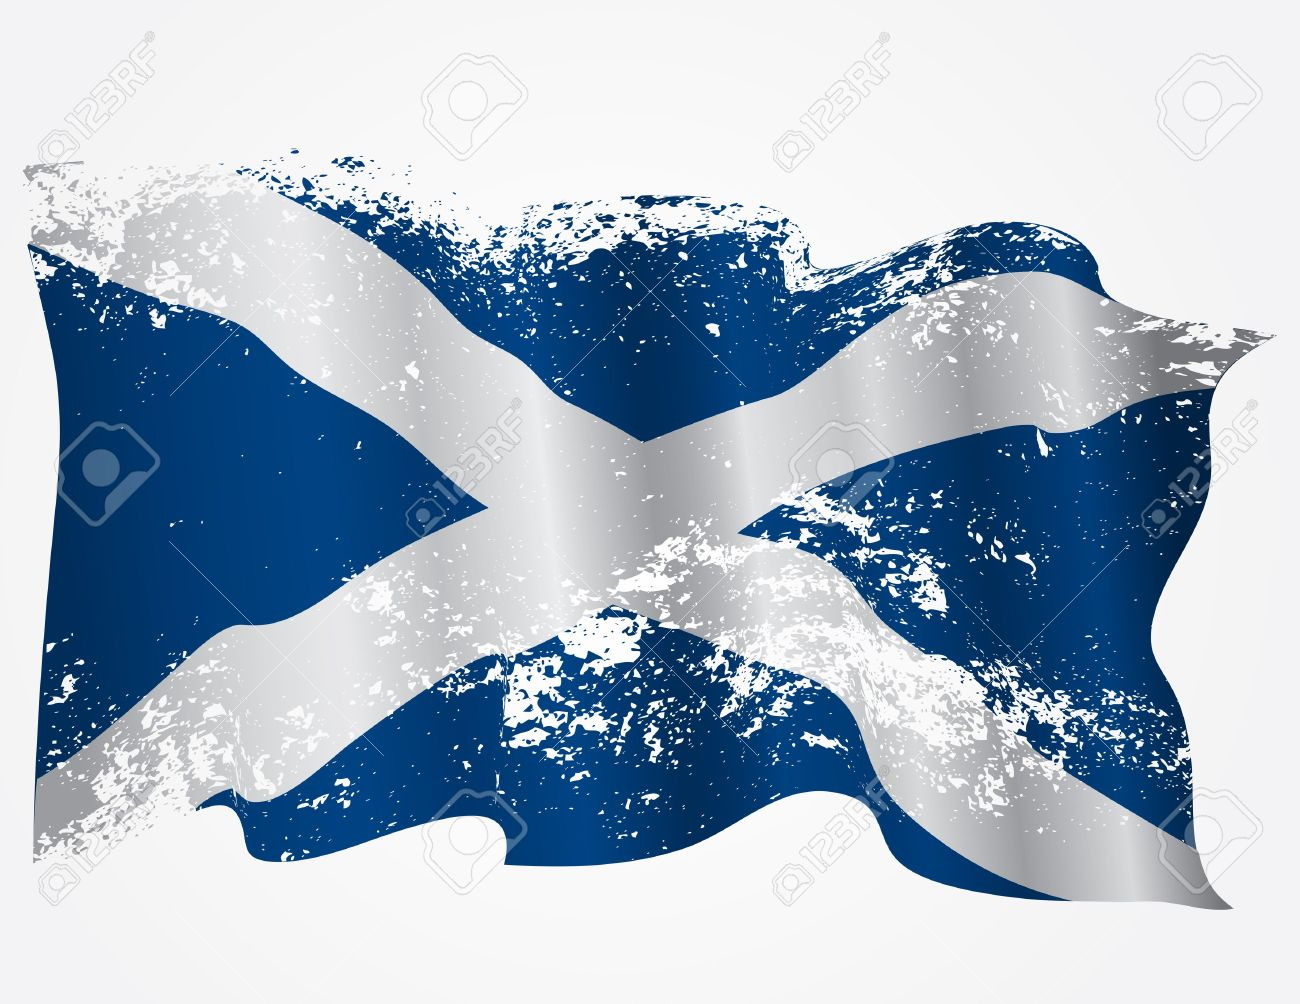 37045568-Scotland-or-Scottish-grunge-flag-Stock-Vector-scotland